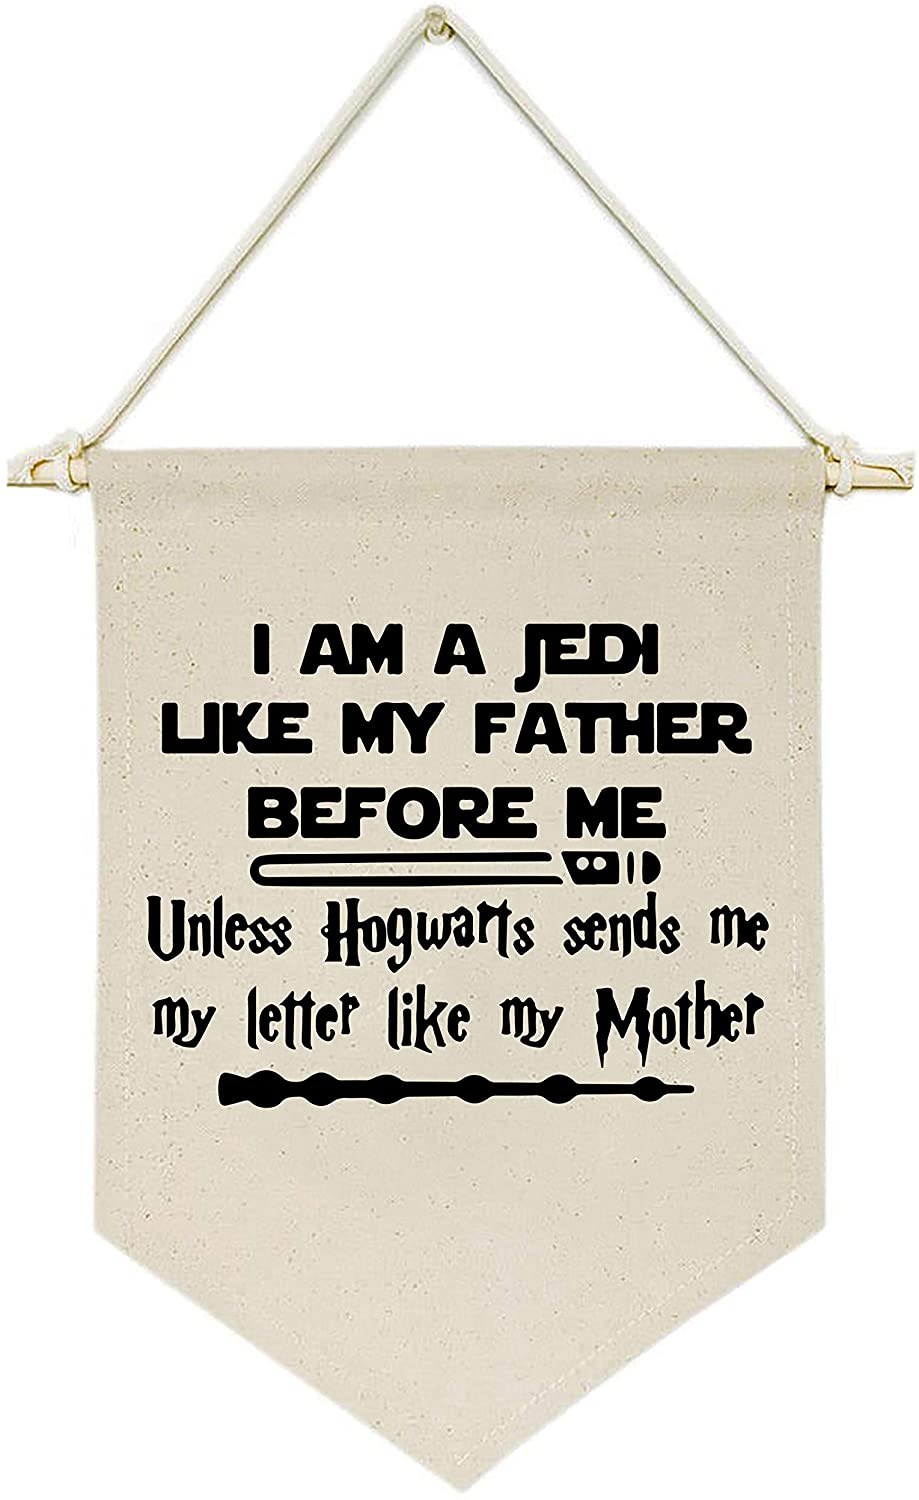 Topthink I Am A Jedi Like My Father Before Me -Canvas Hanging Flag Banner Wall Sign Decor Gift for Baby Kids Boy Nursery Teen Room Front Door - Star Wars Harry Potter Quotes